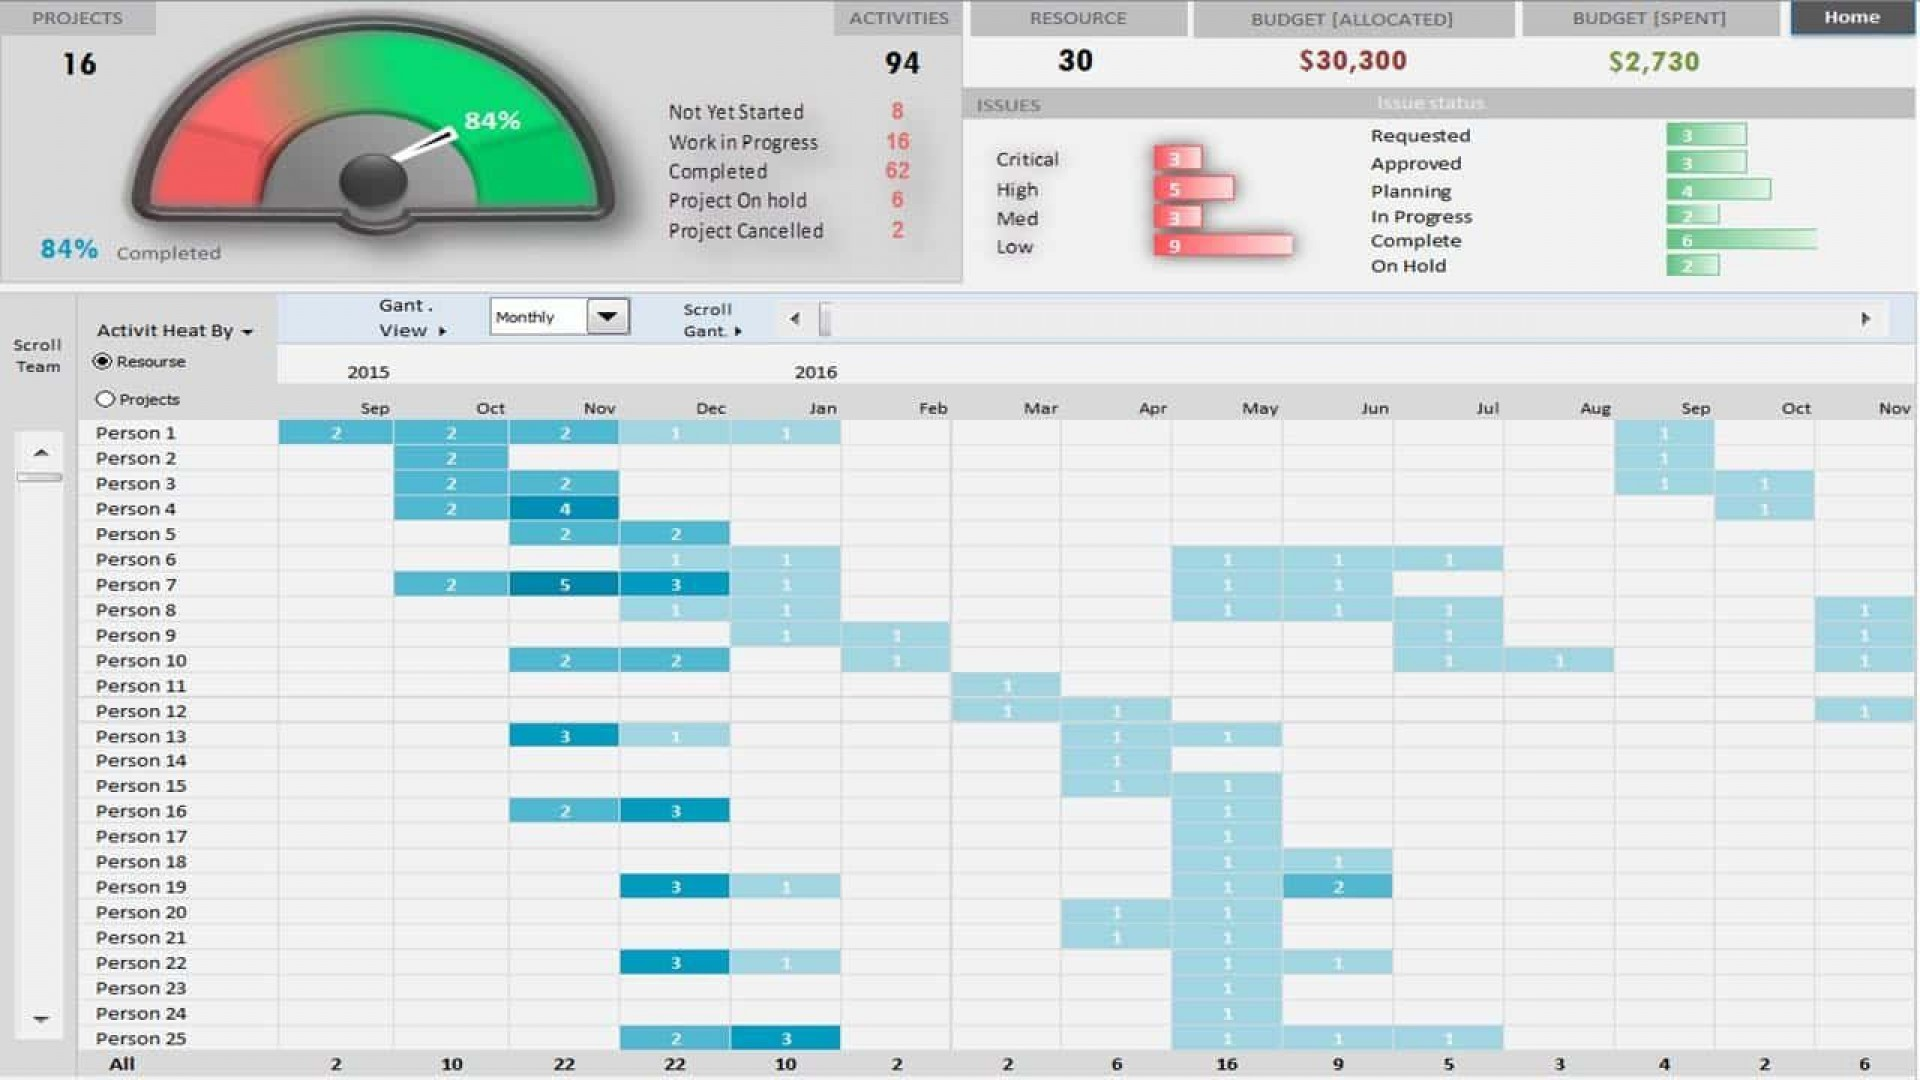 002 Sensational Multiple Project Tracking Template Excel Inspiration  Free Download Xl Analysistabs-multiple-project-tracking-template-excel-2003-version1920